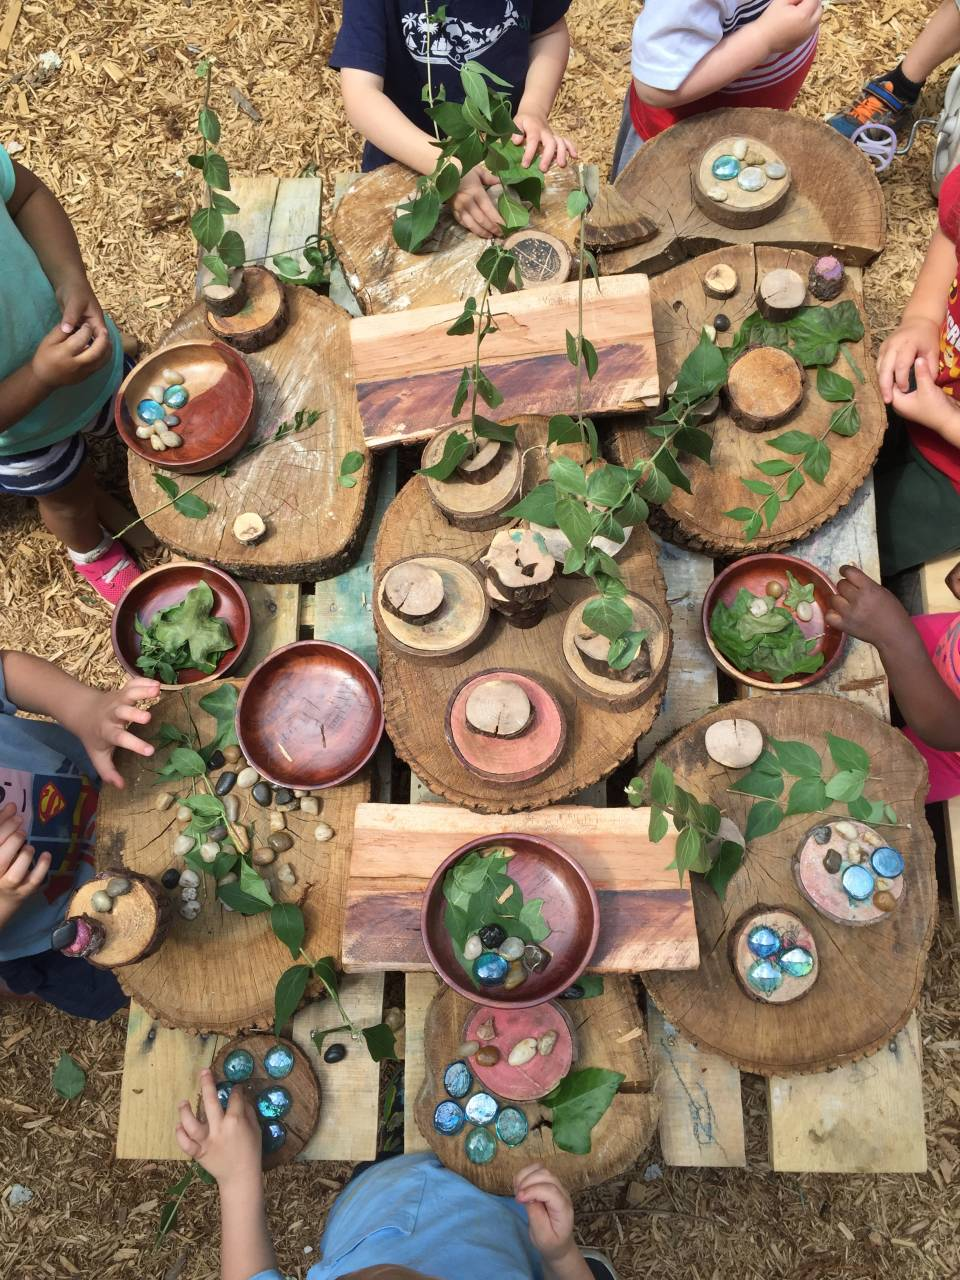 Picture Source: Willow School:Provocations on the Playground